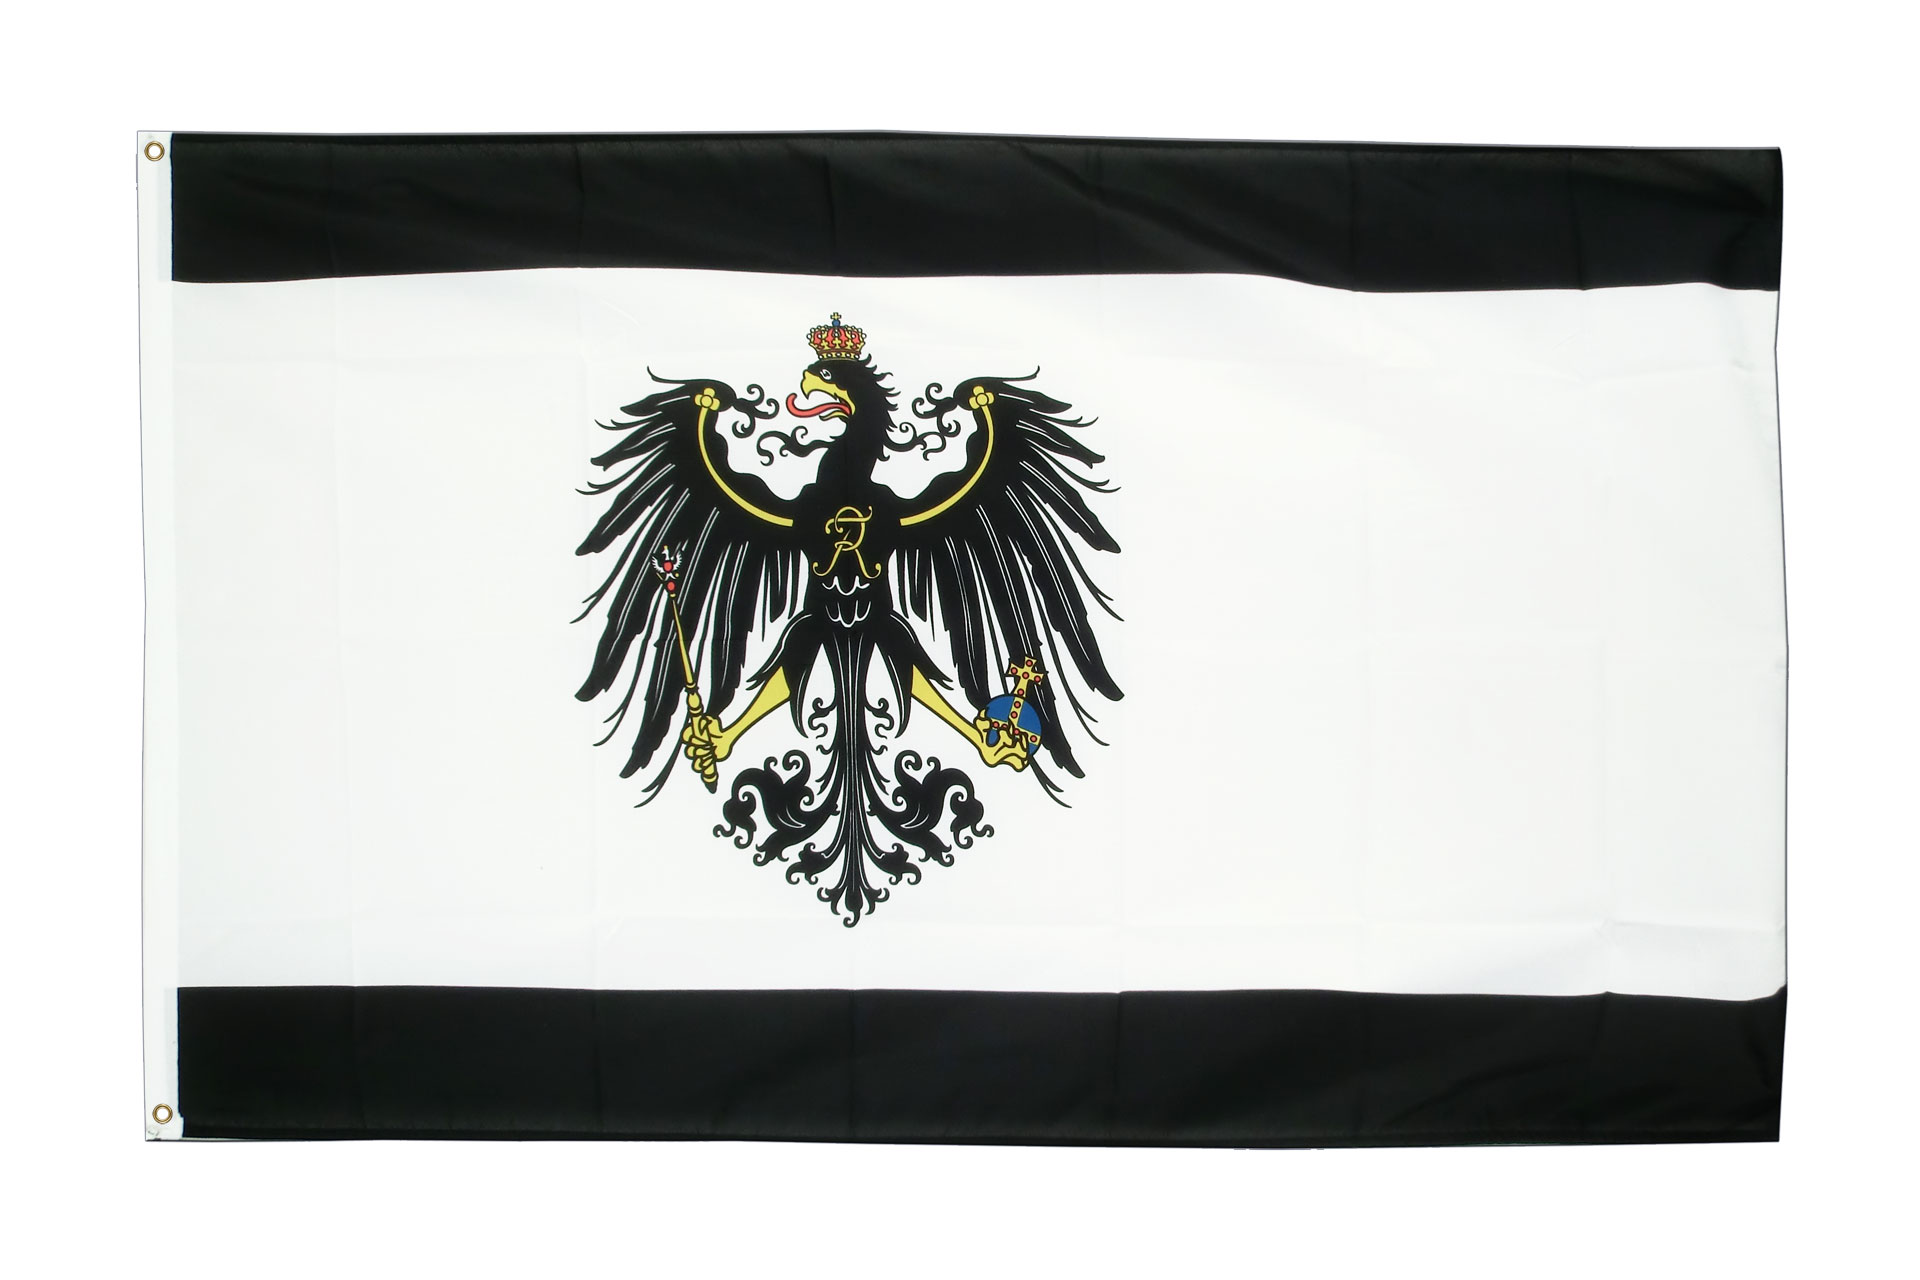 Buy Prussia Flag - 3x5 ft (90x150 cm) - Royal-Flags: royal-flags.co.uk/prussia-flag-2467.html